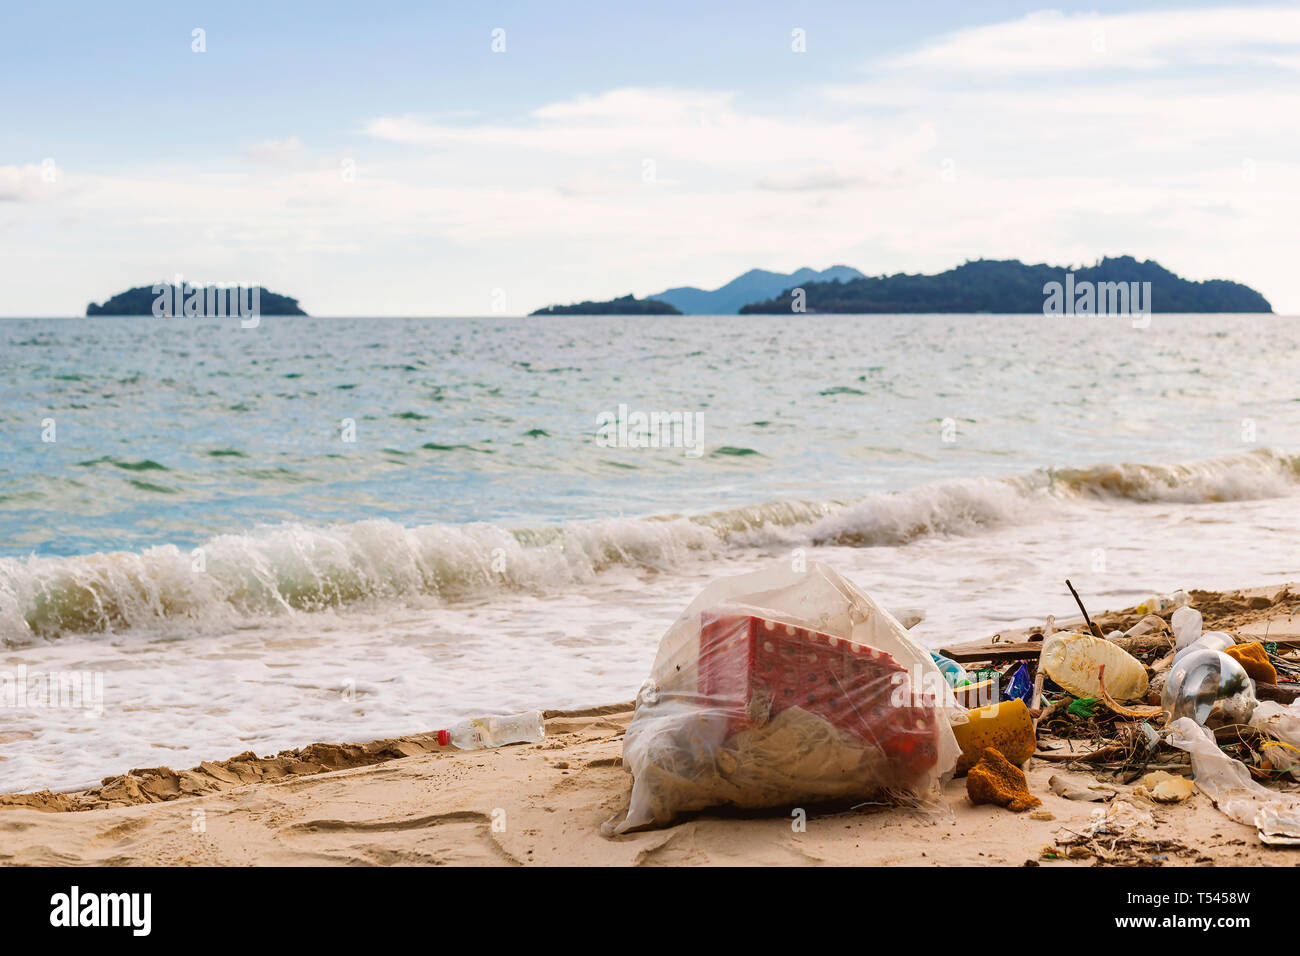 The destruction of nature by the hand of man. From household garbage being dumped into the sea. - Stock Image